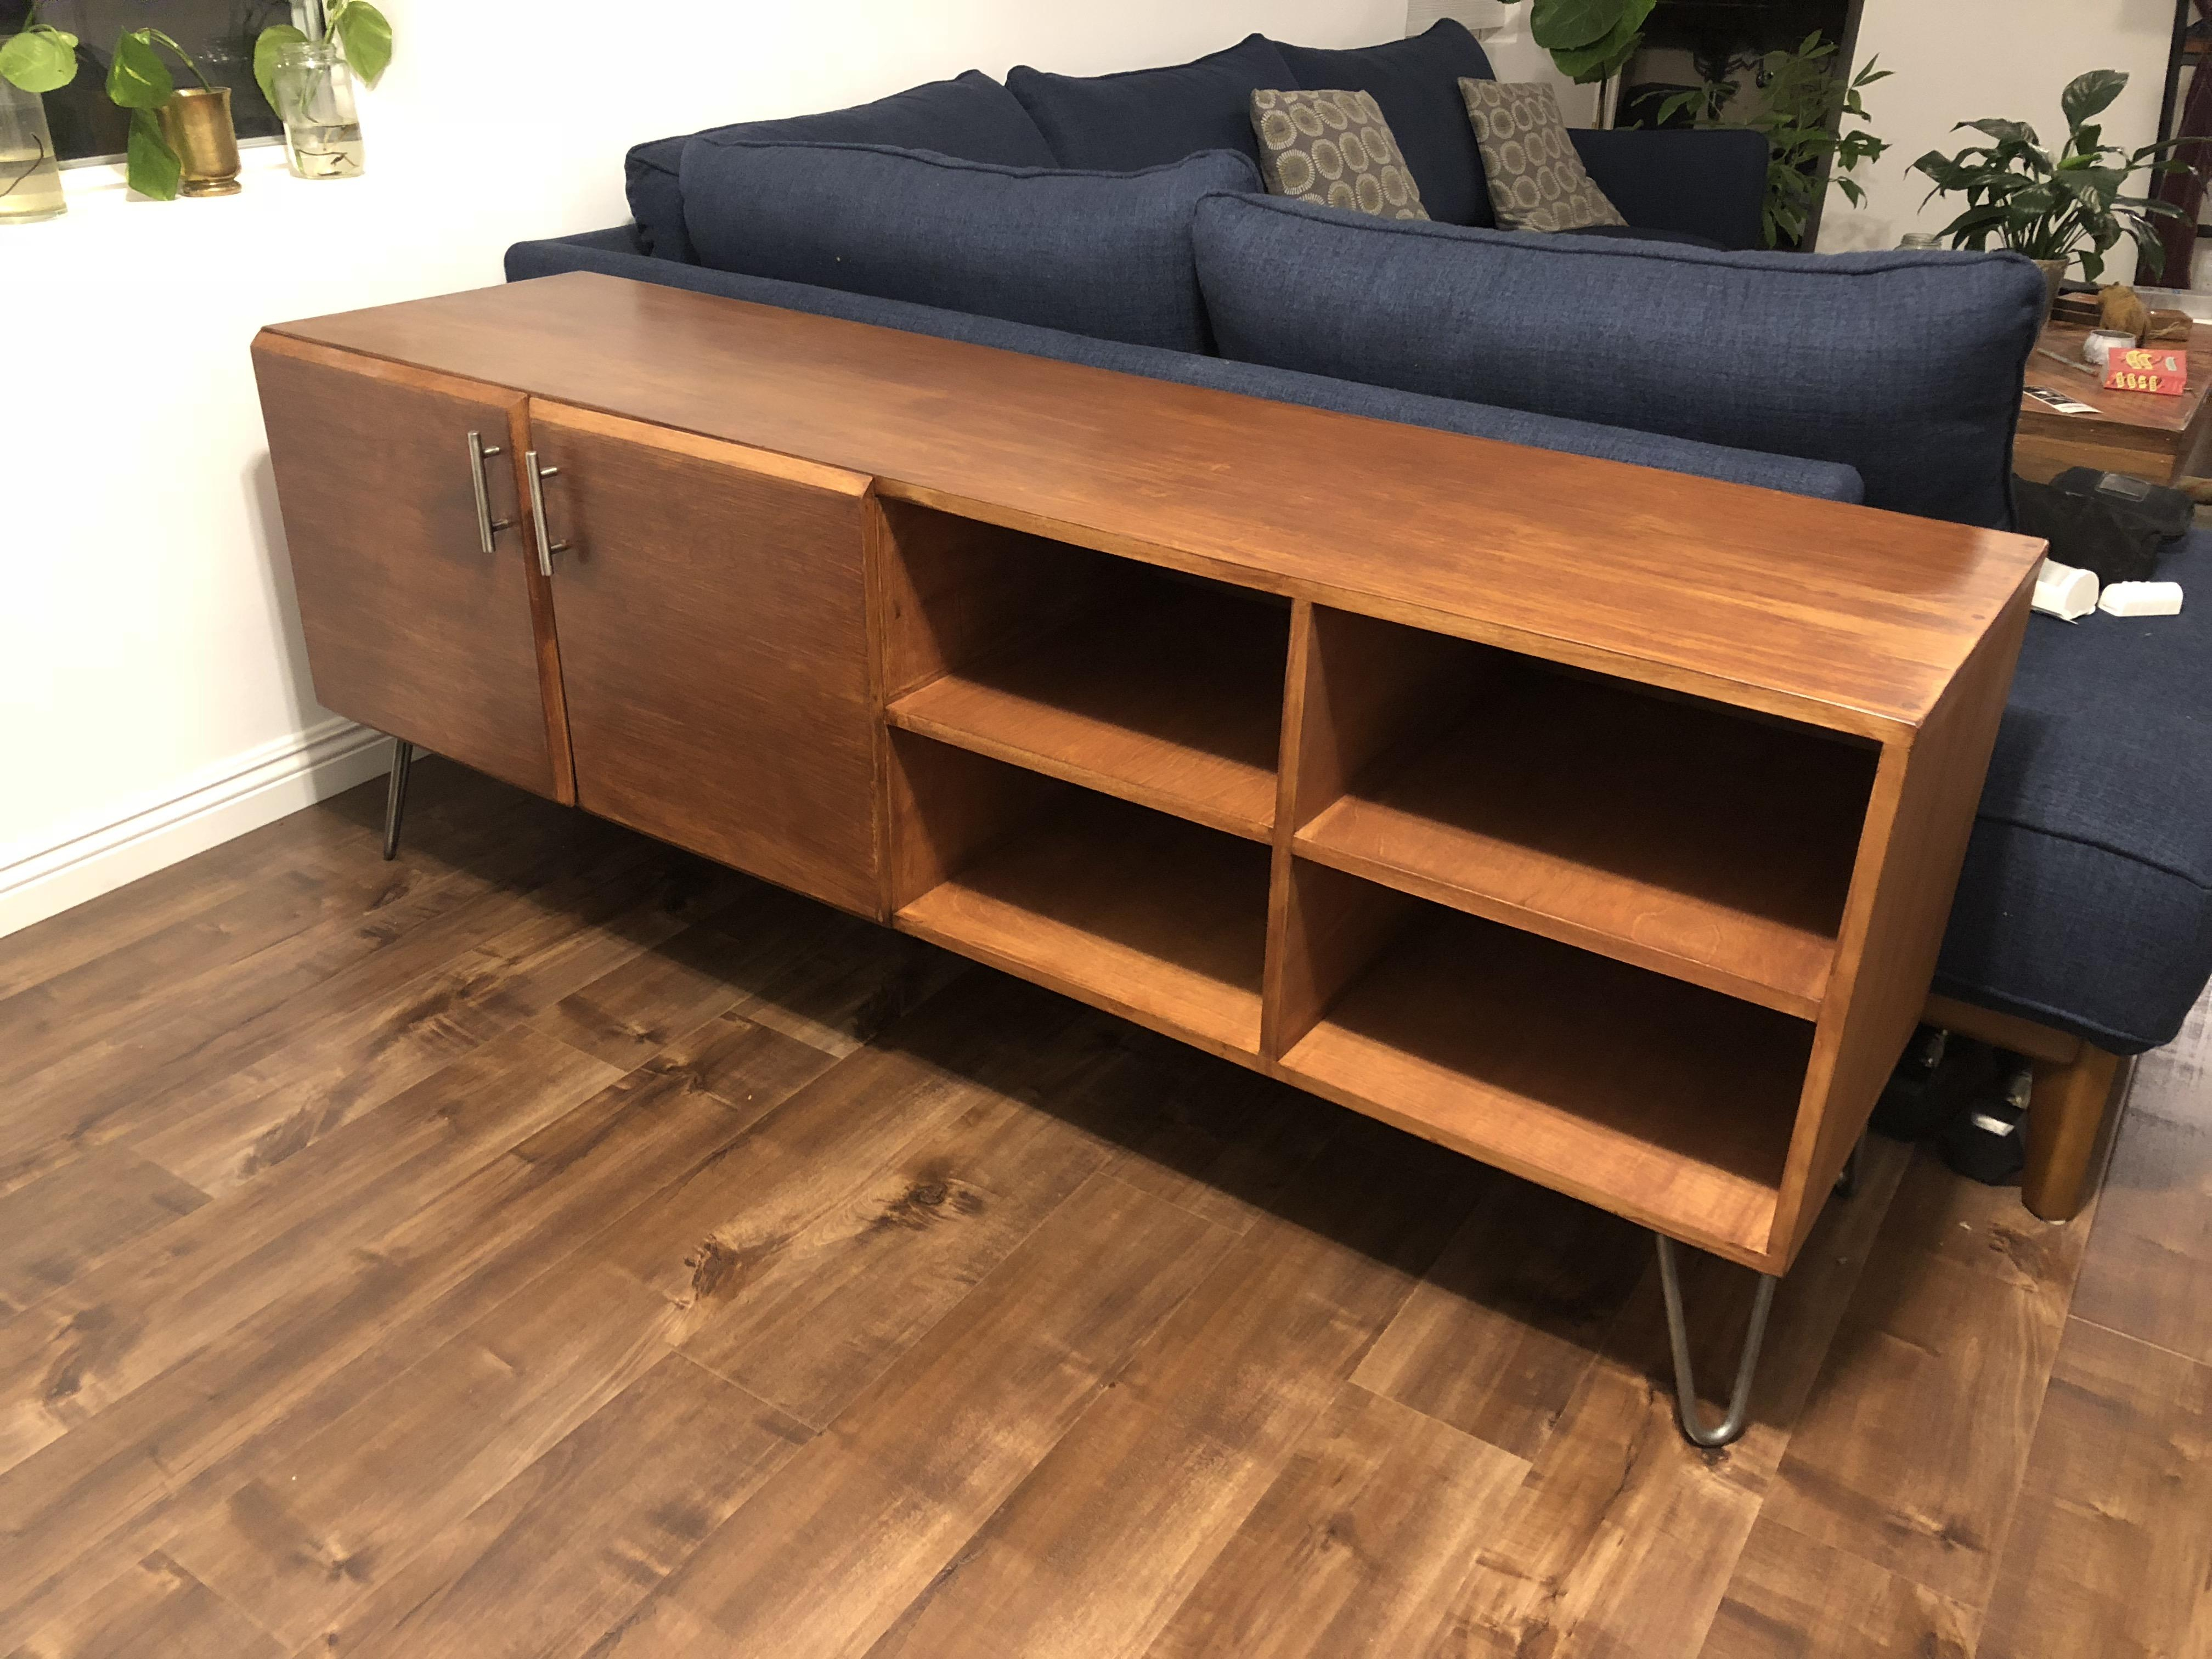 Mid Century Credenza Just Delivered To Some Clients Pertaining To Summer Desire Credenzas (View 14 of 30)